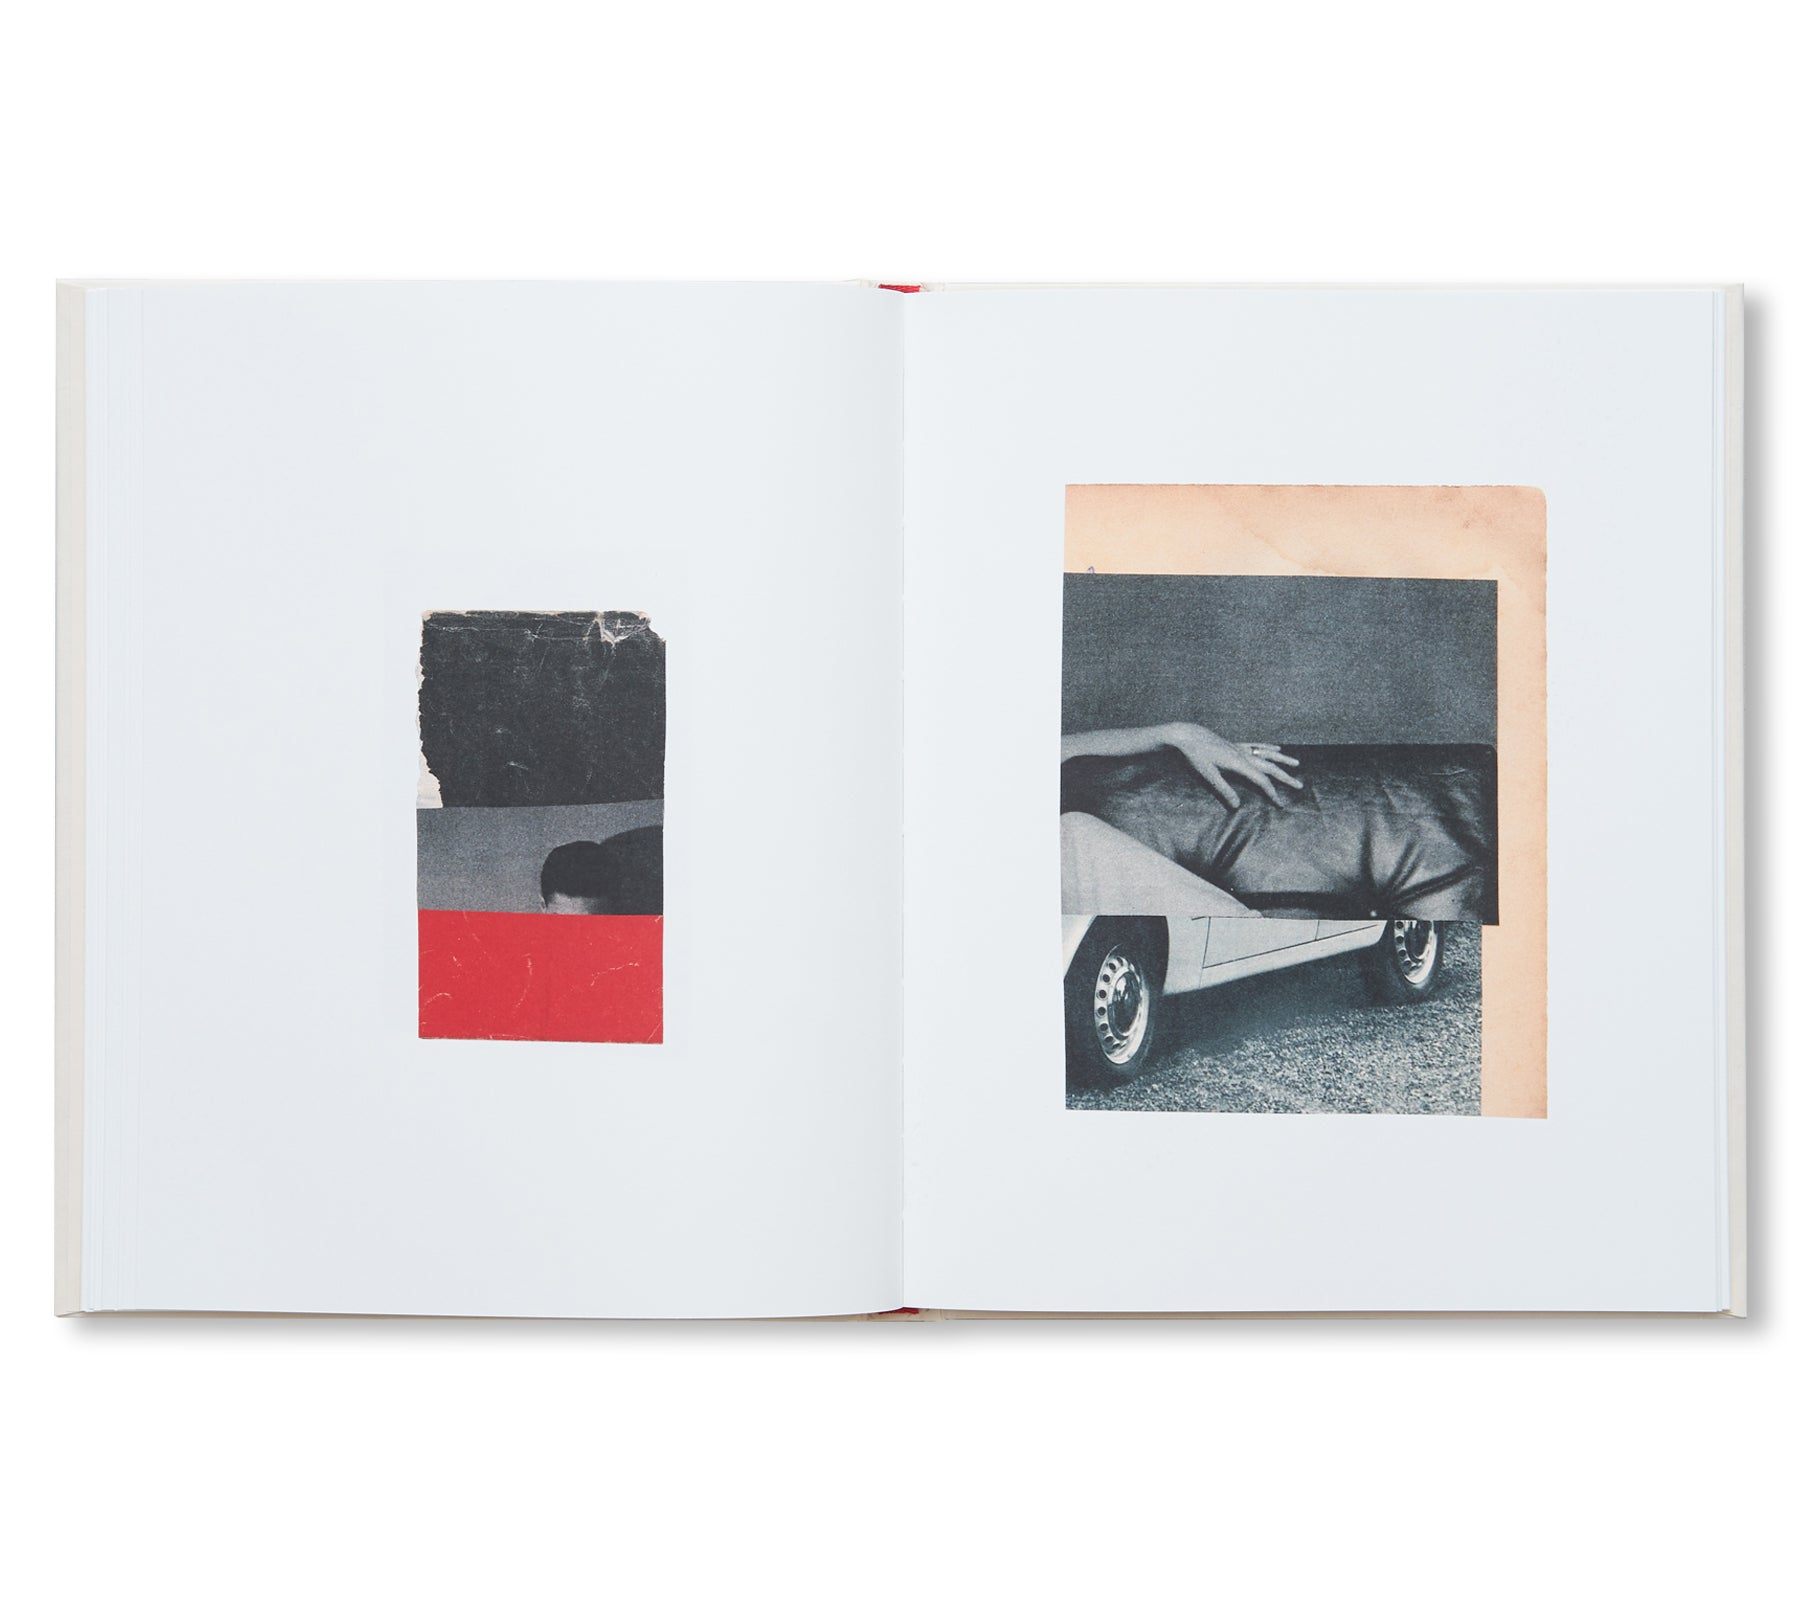 WHY I HATE CARS by Katrien De Blauwer [SPECIAL EDITION]